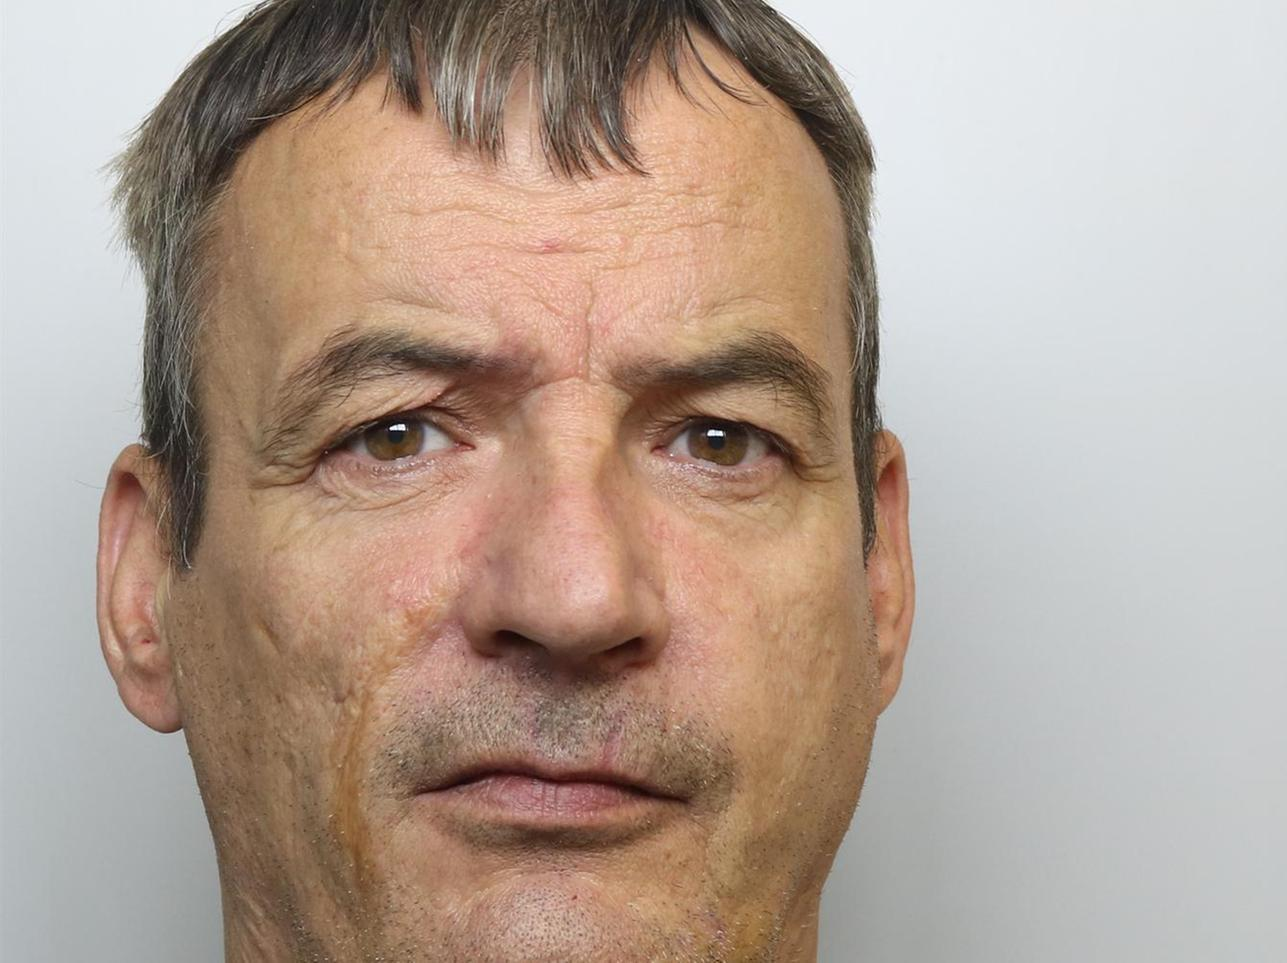 Fetish murderer strangled Leeds mum in sex attack after convincing parole board he was safe to be released from jail